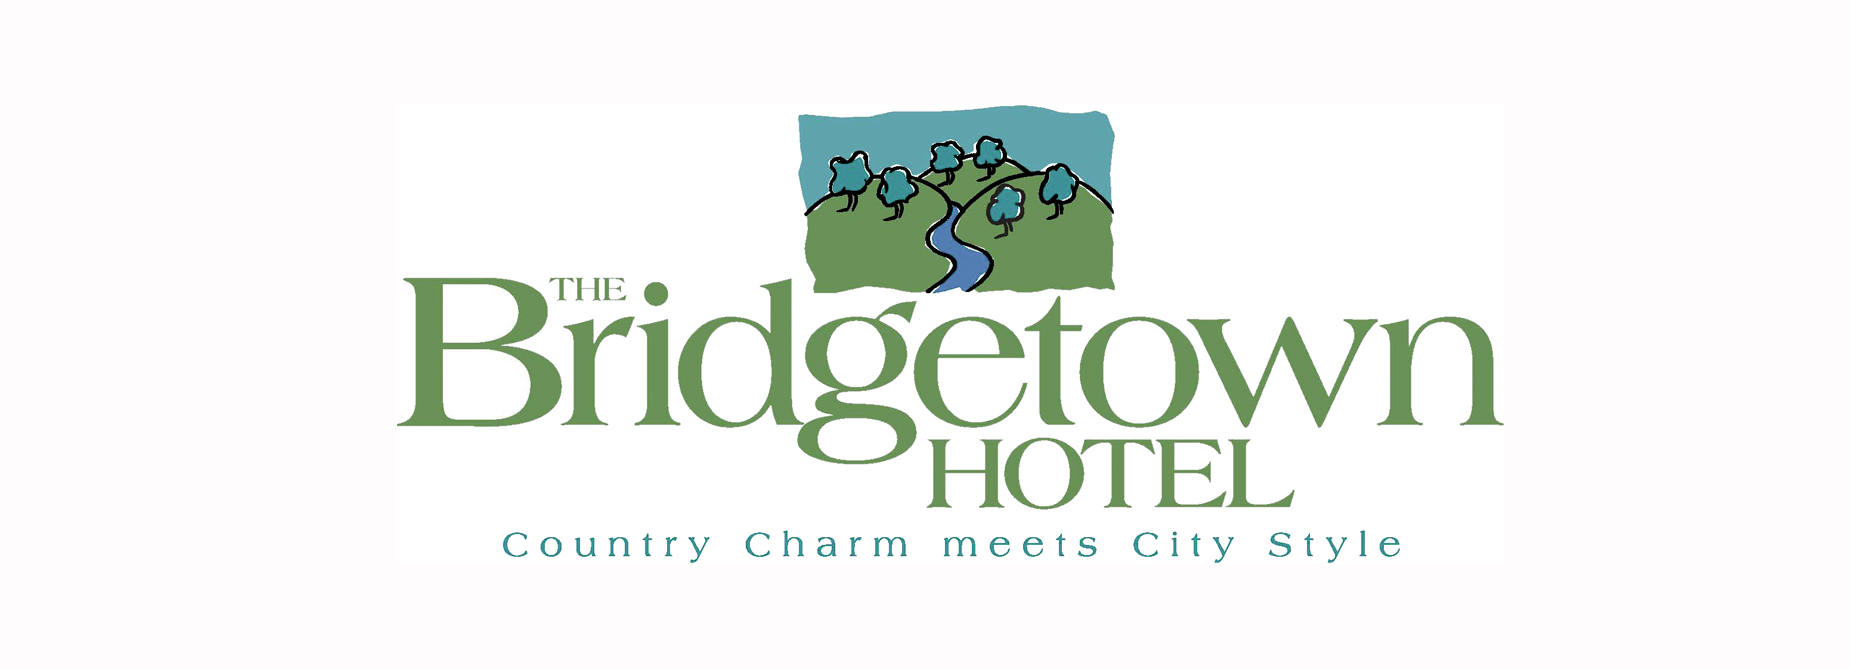 The Bridgetown Hotel Logo